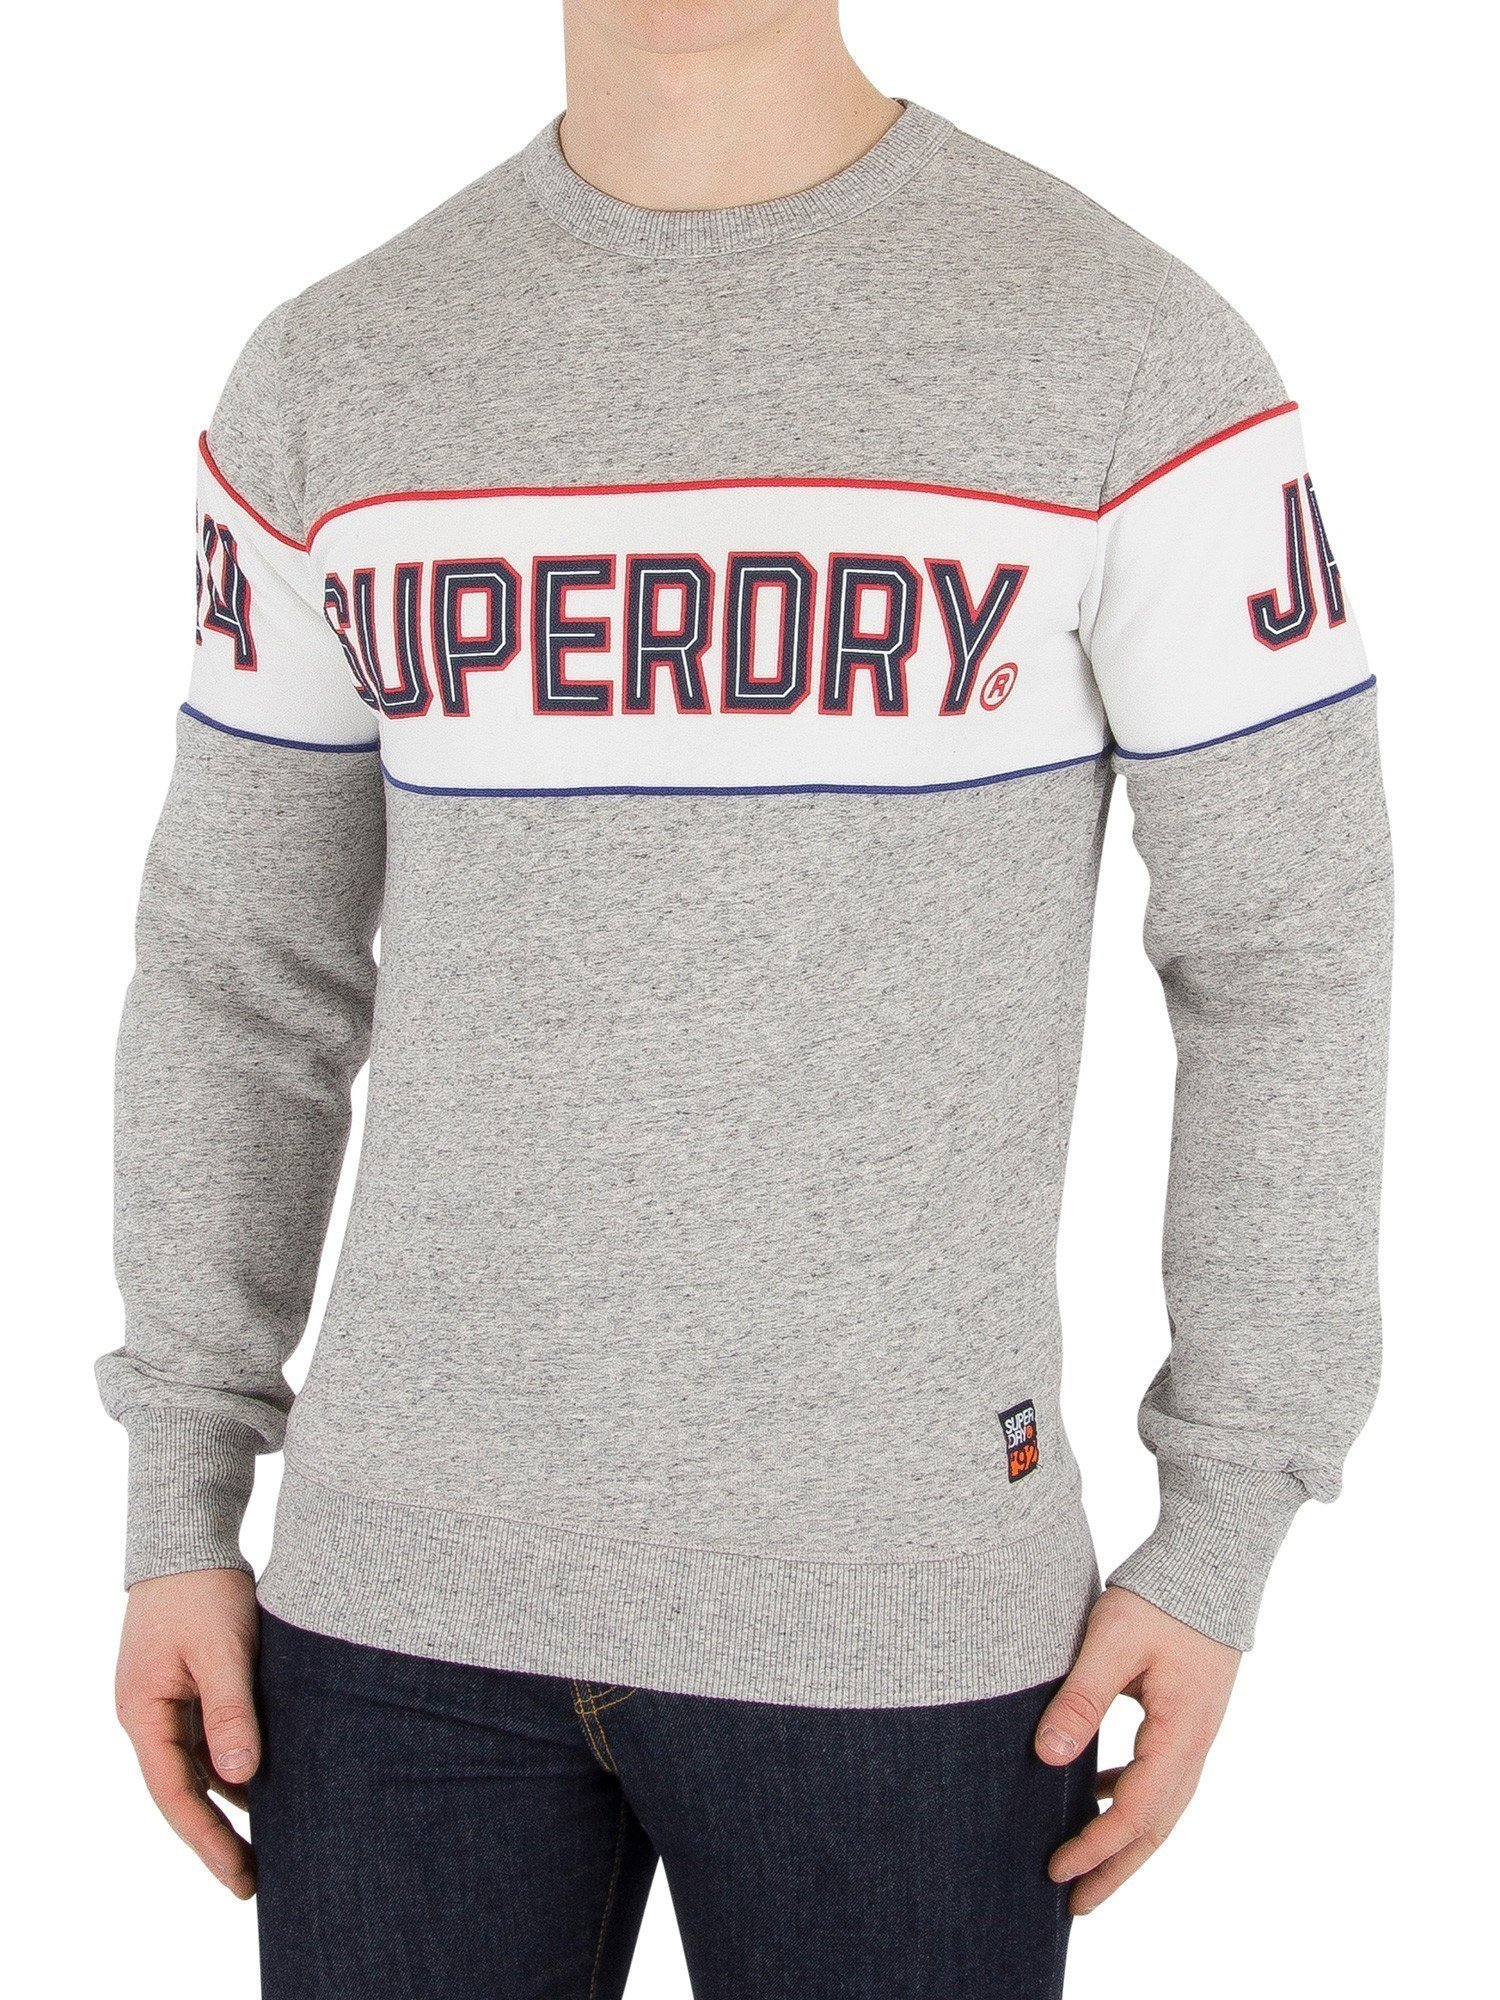 Superdry Men's Retro Stripe Sweatshirt, Grey, Medium